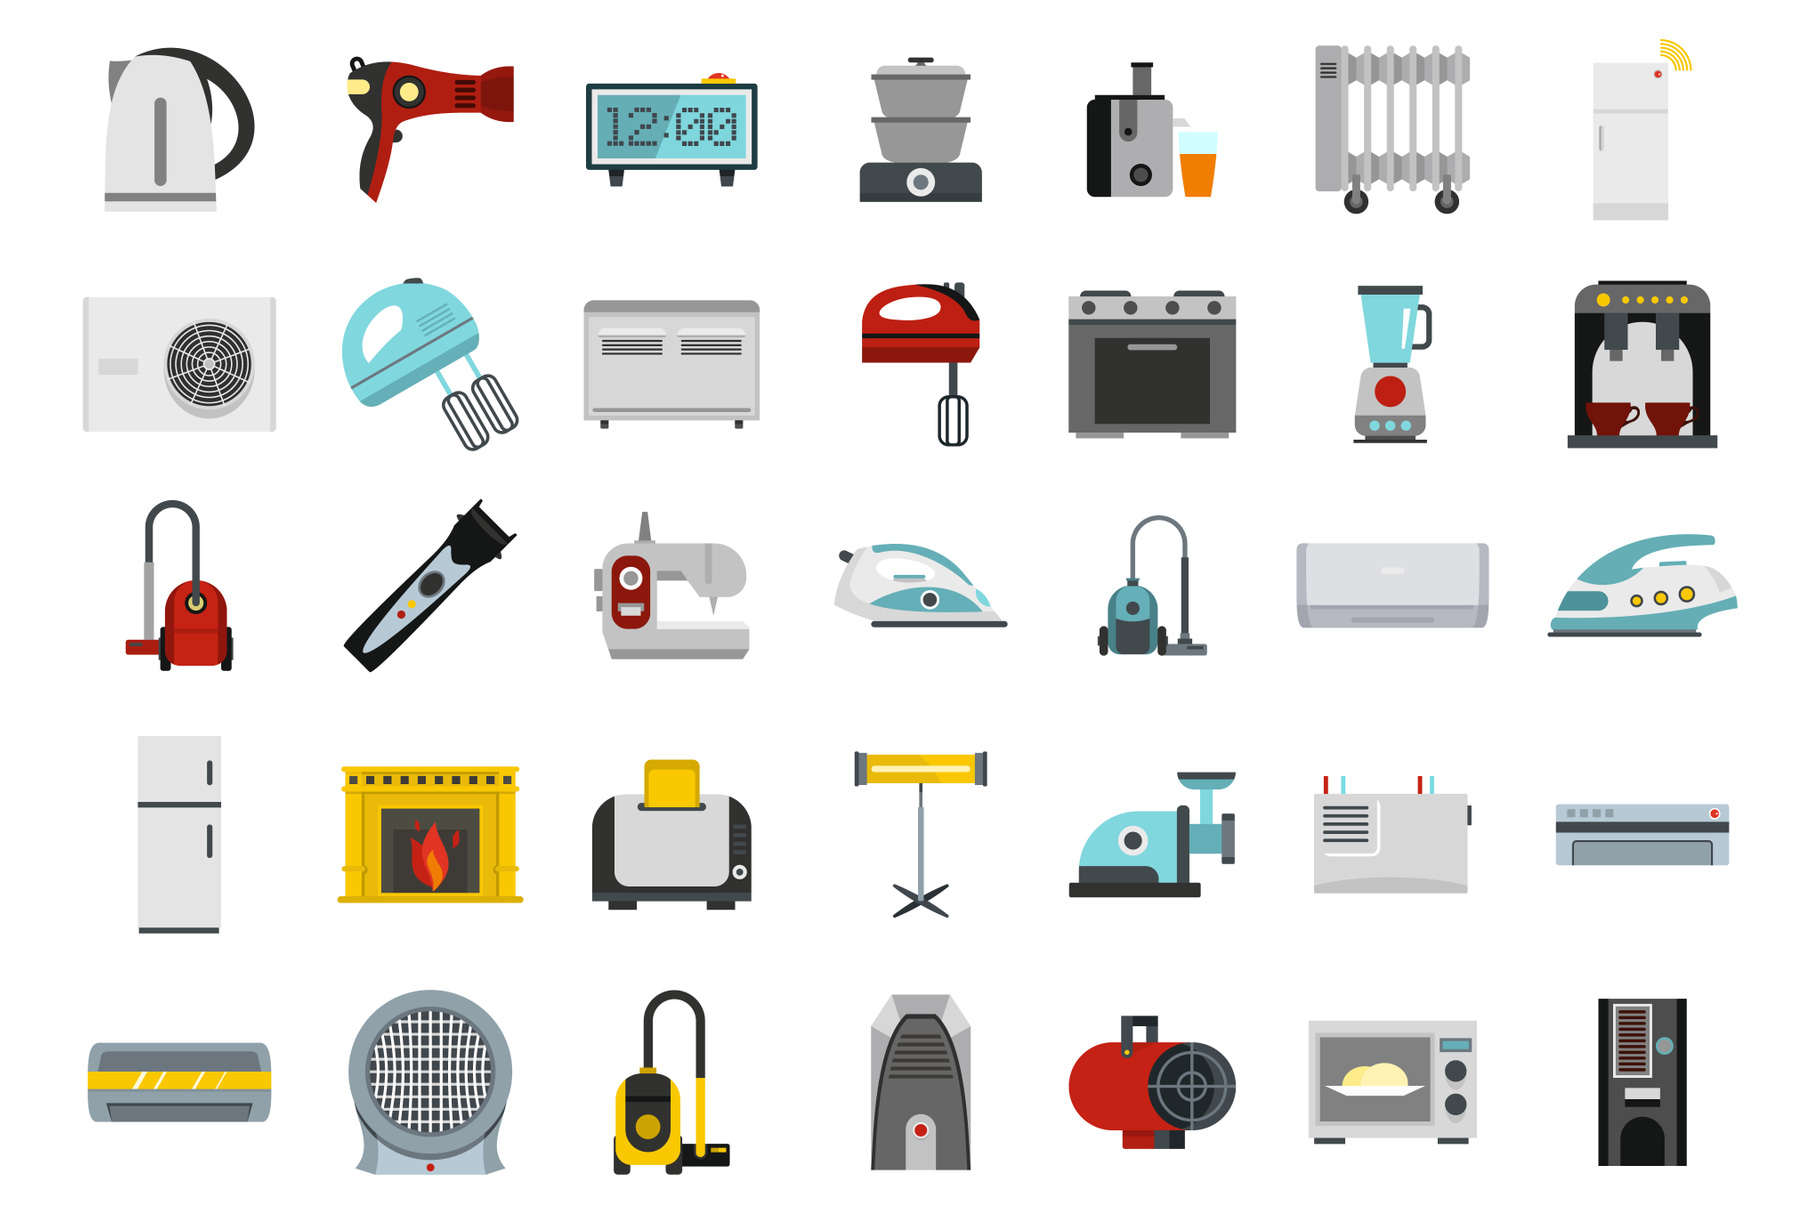 Home appliances icon set, flat style example image 1